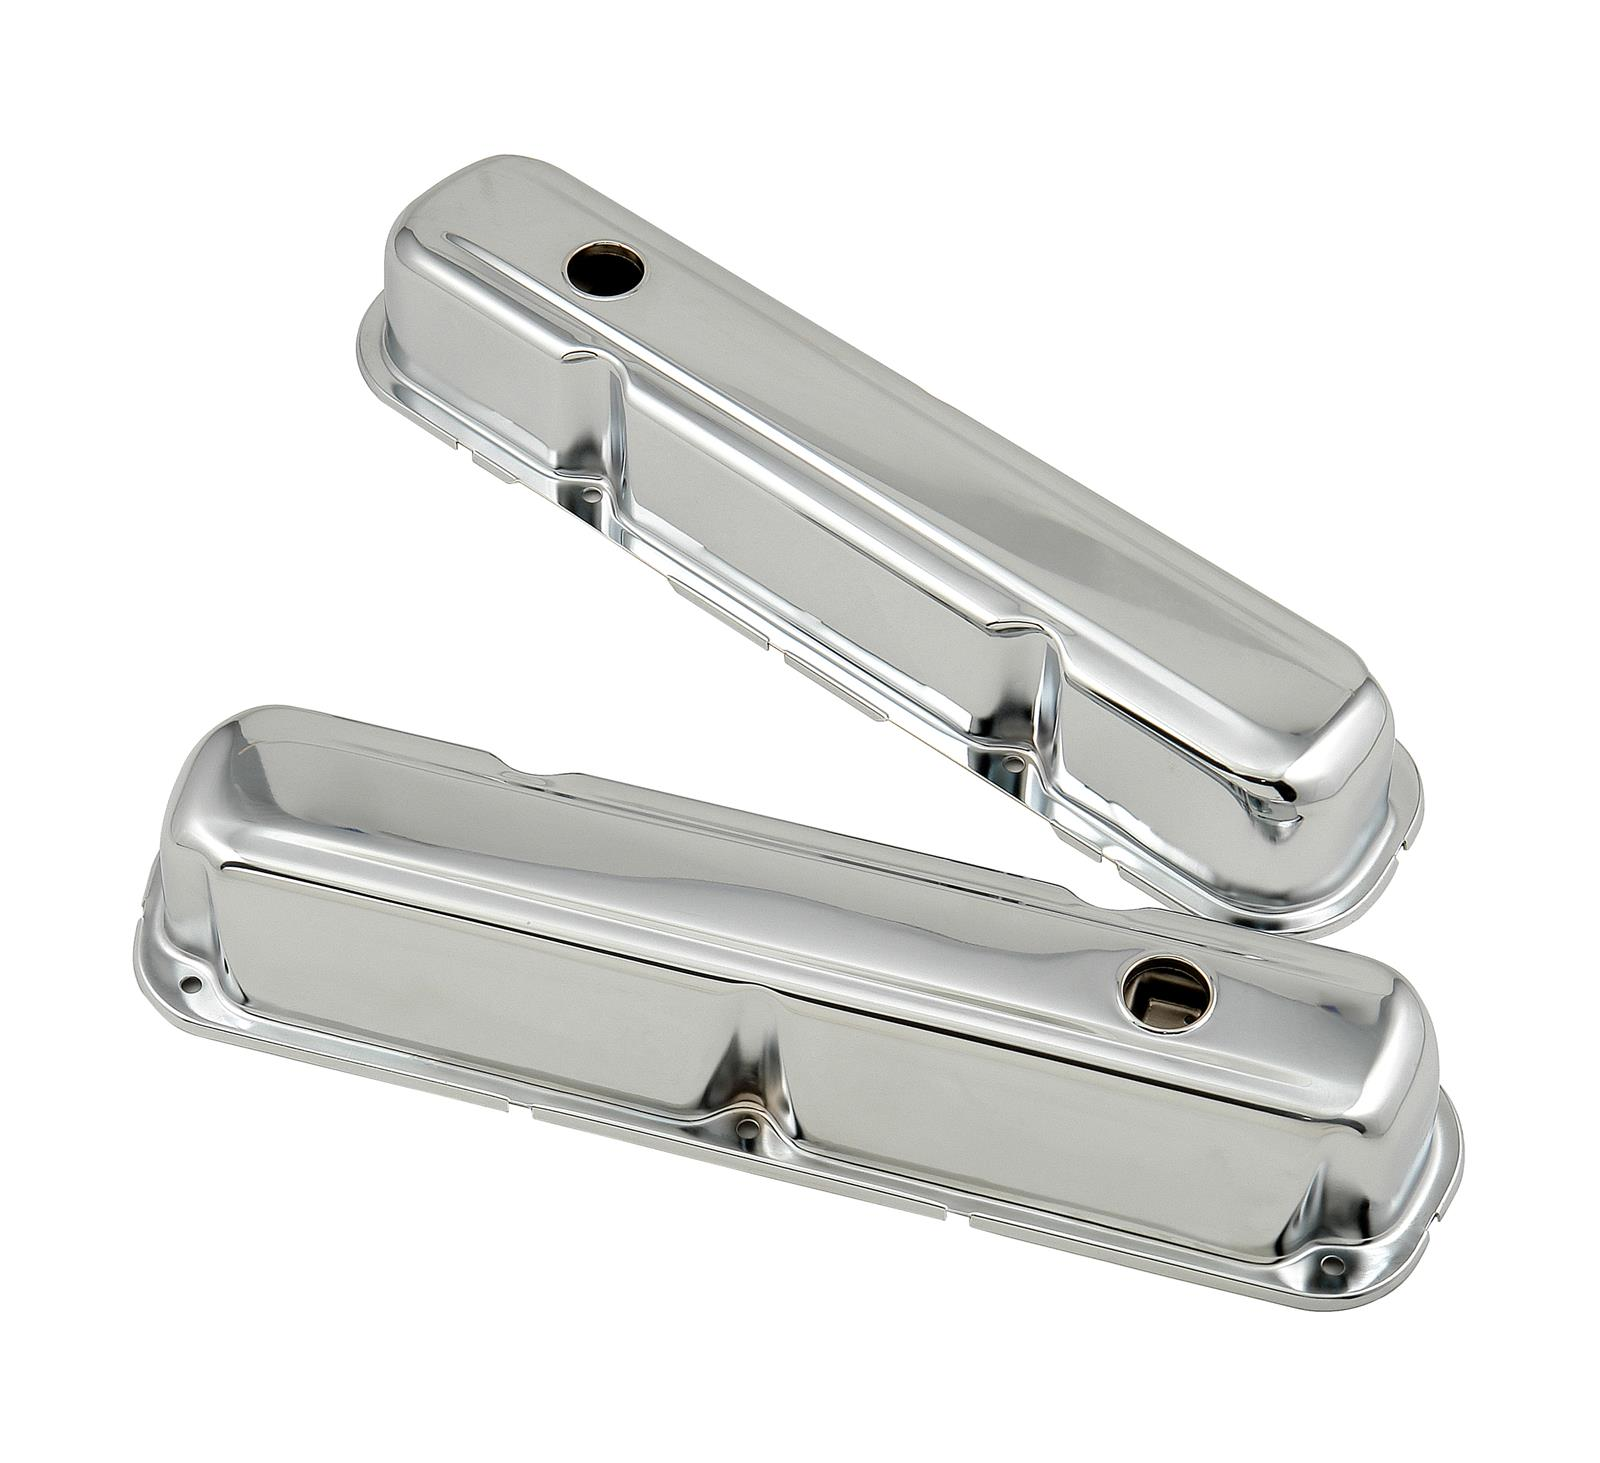 Small block chrysler valve covers #3